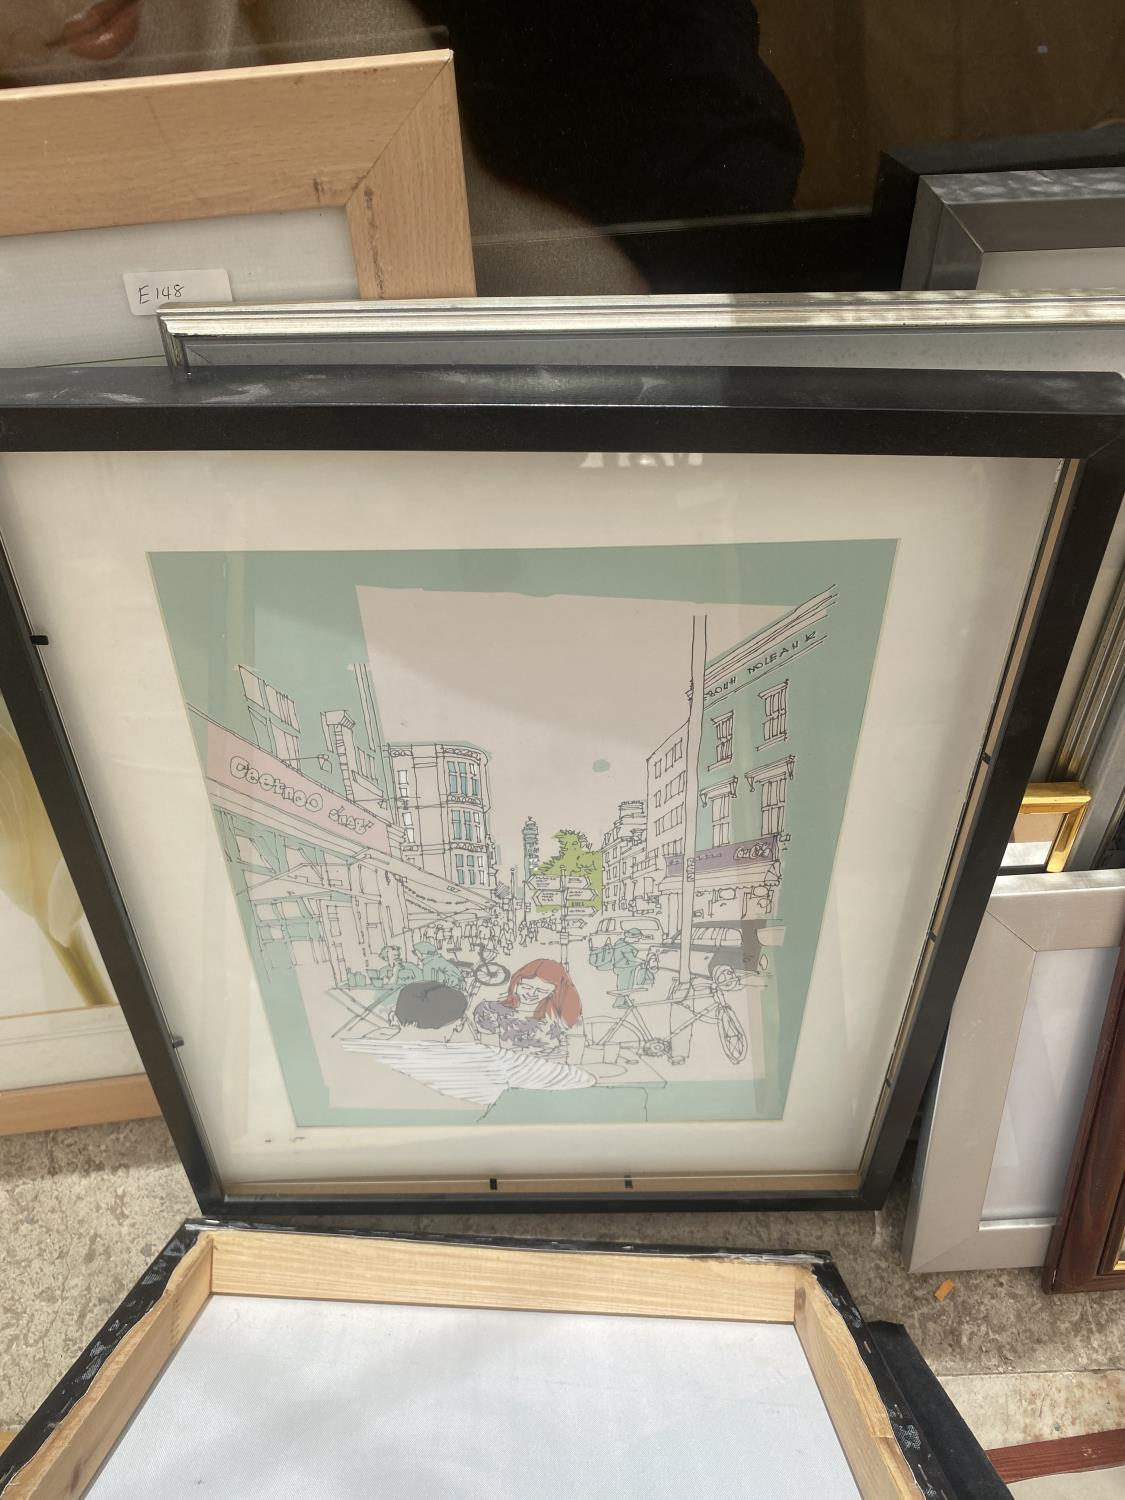 AN ASSORTMENT OF FRAMED PRINTS AND PICTURES - Image 2 of 5